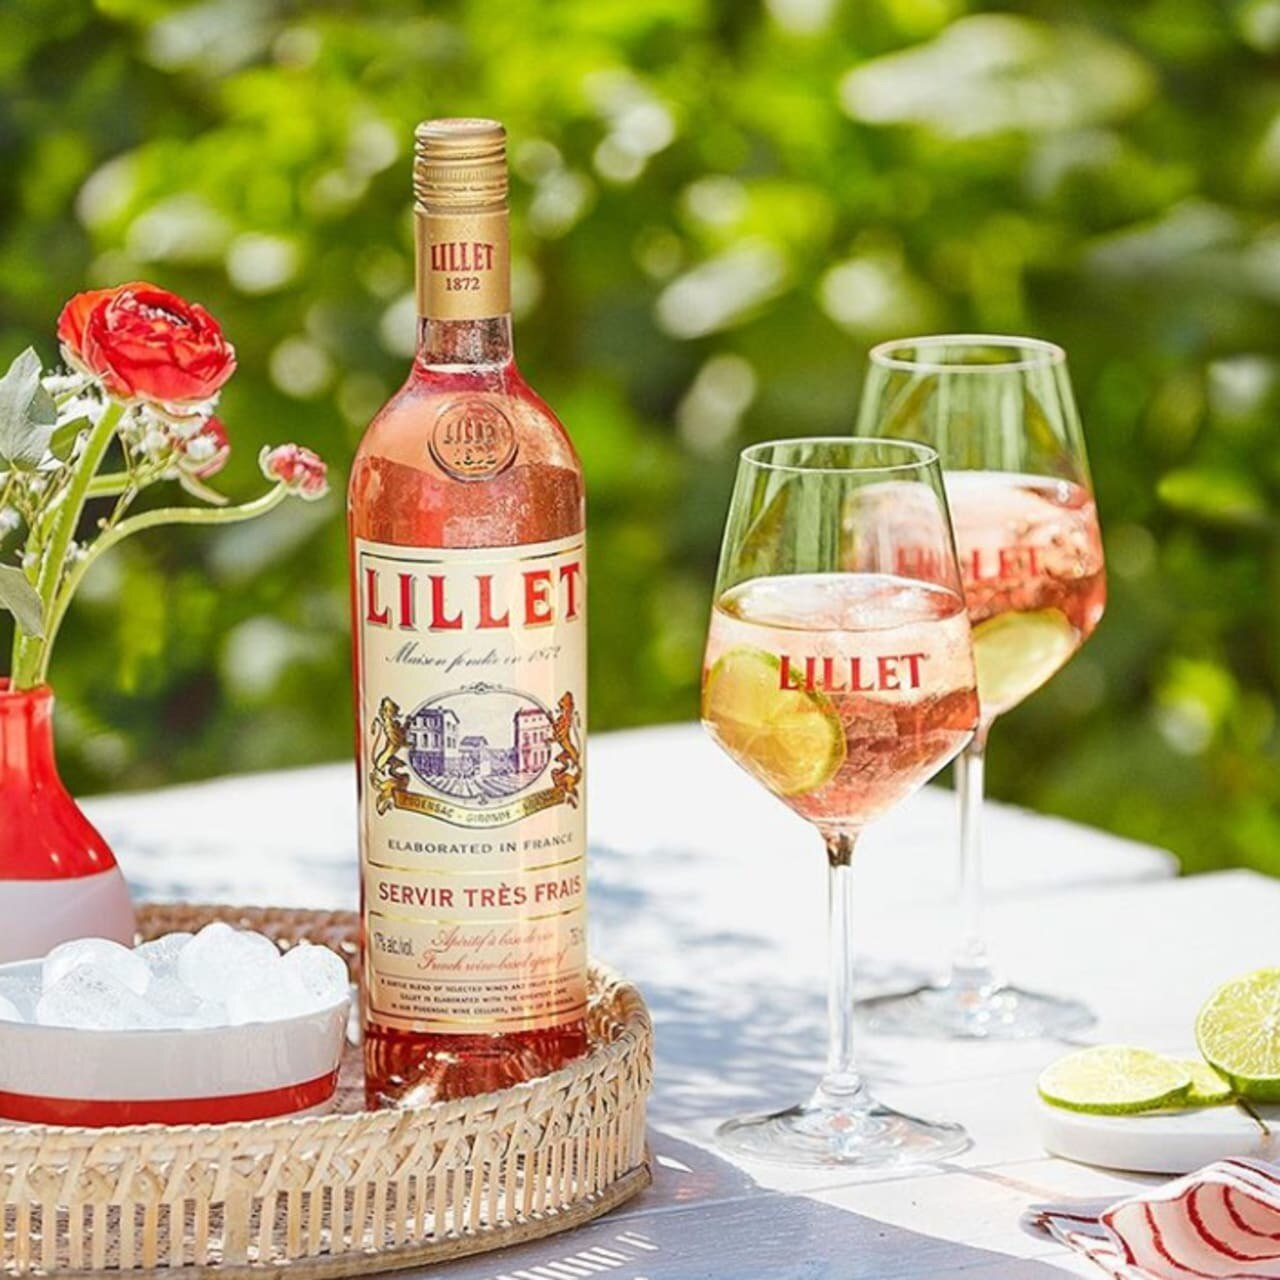 Lillet Rose Vermouth